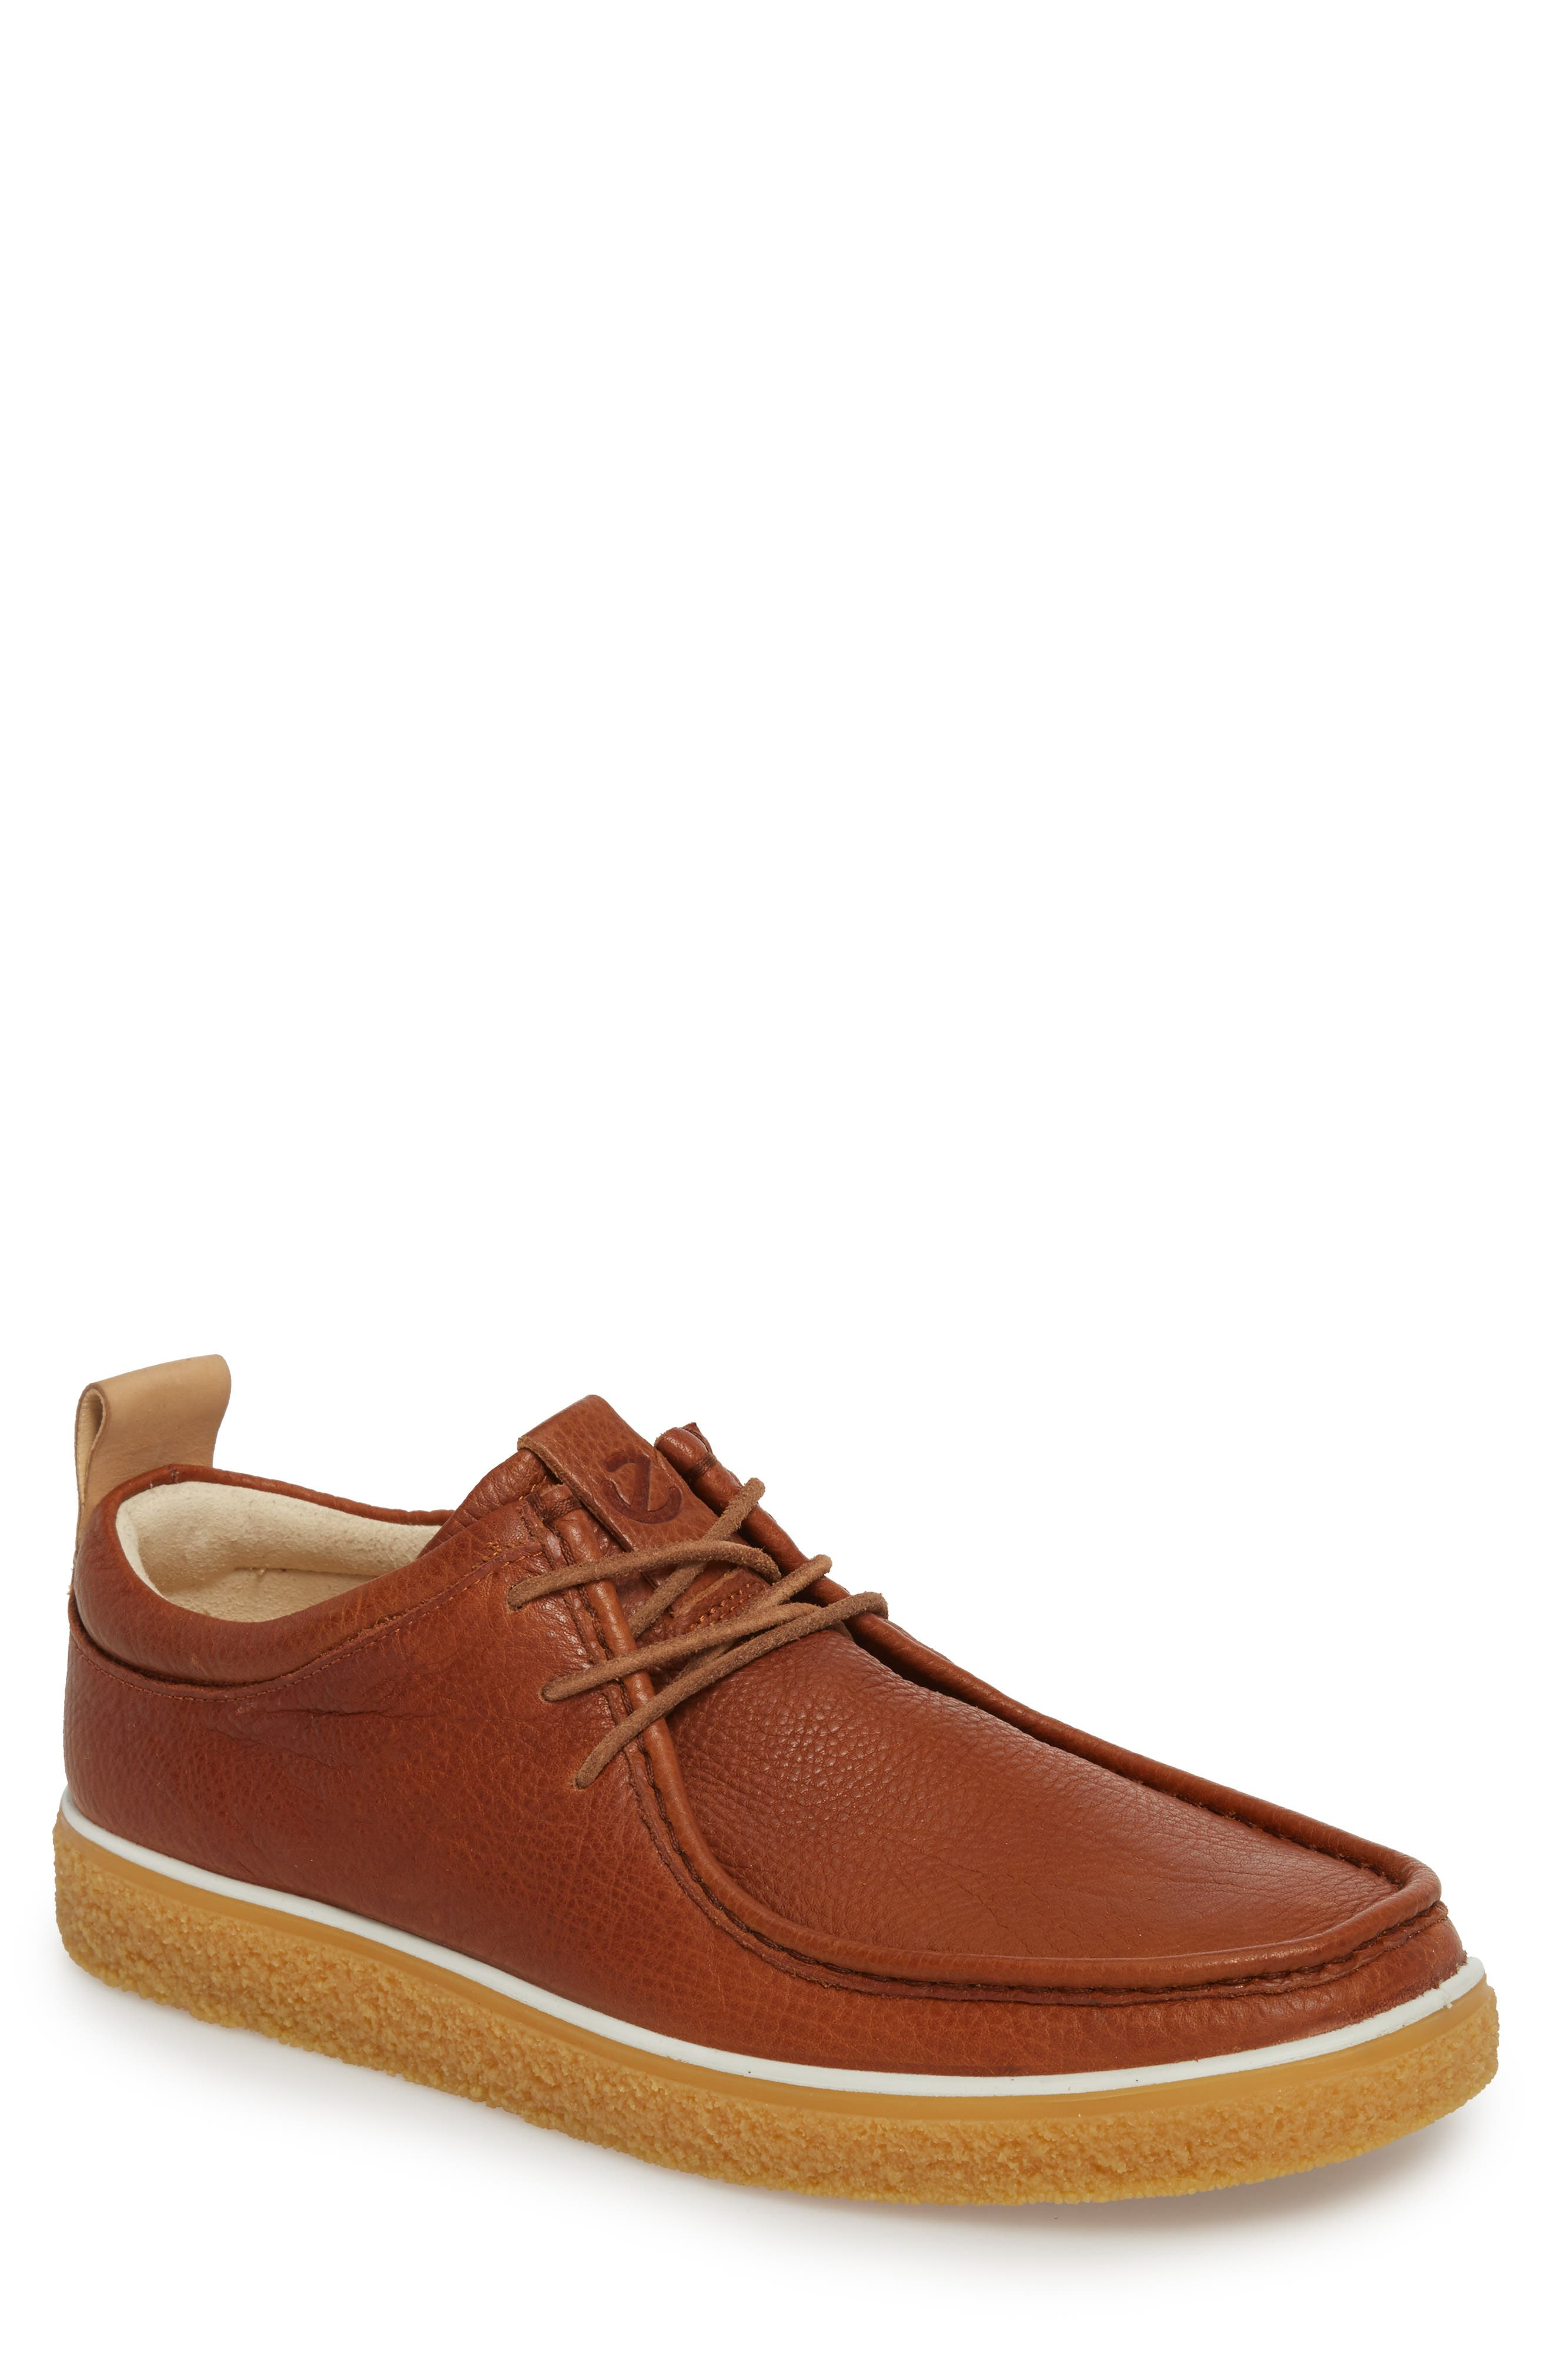 Crepetray Moc Toe Lace-Up,                         Main,                         color, Lion Leather